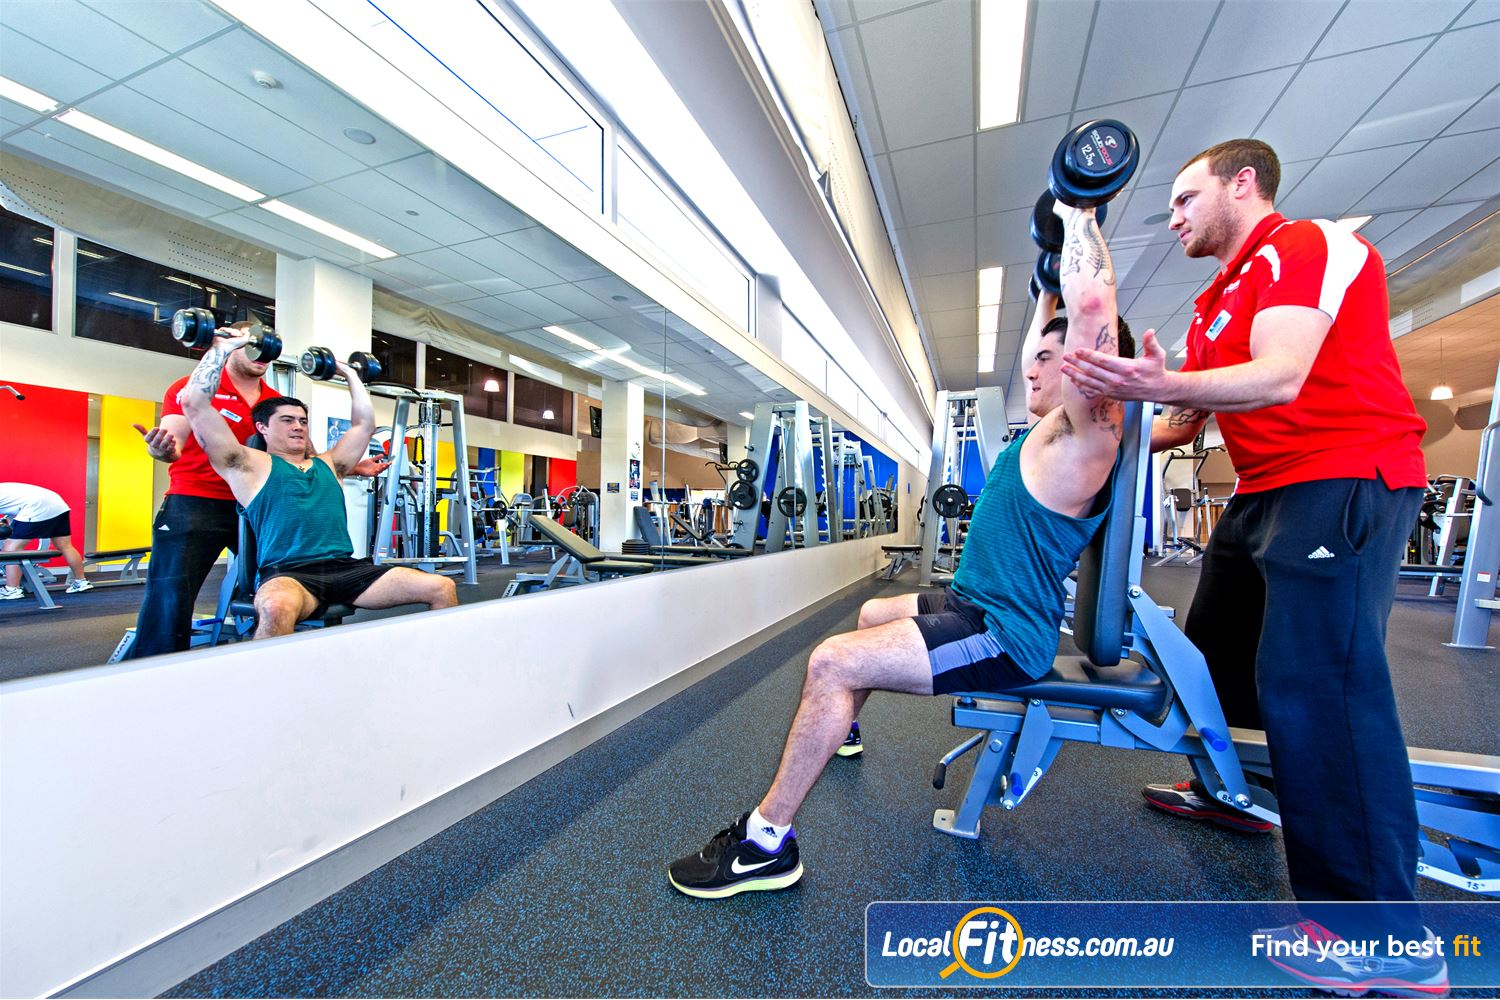 Genesis Fitness Clubs Parramatta Get the right training advice with our qualified personal trainers.